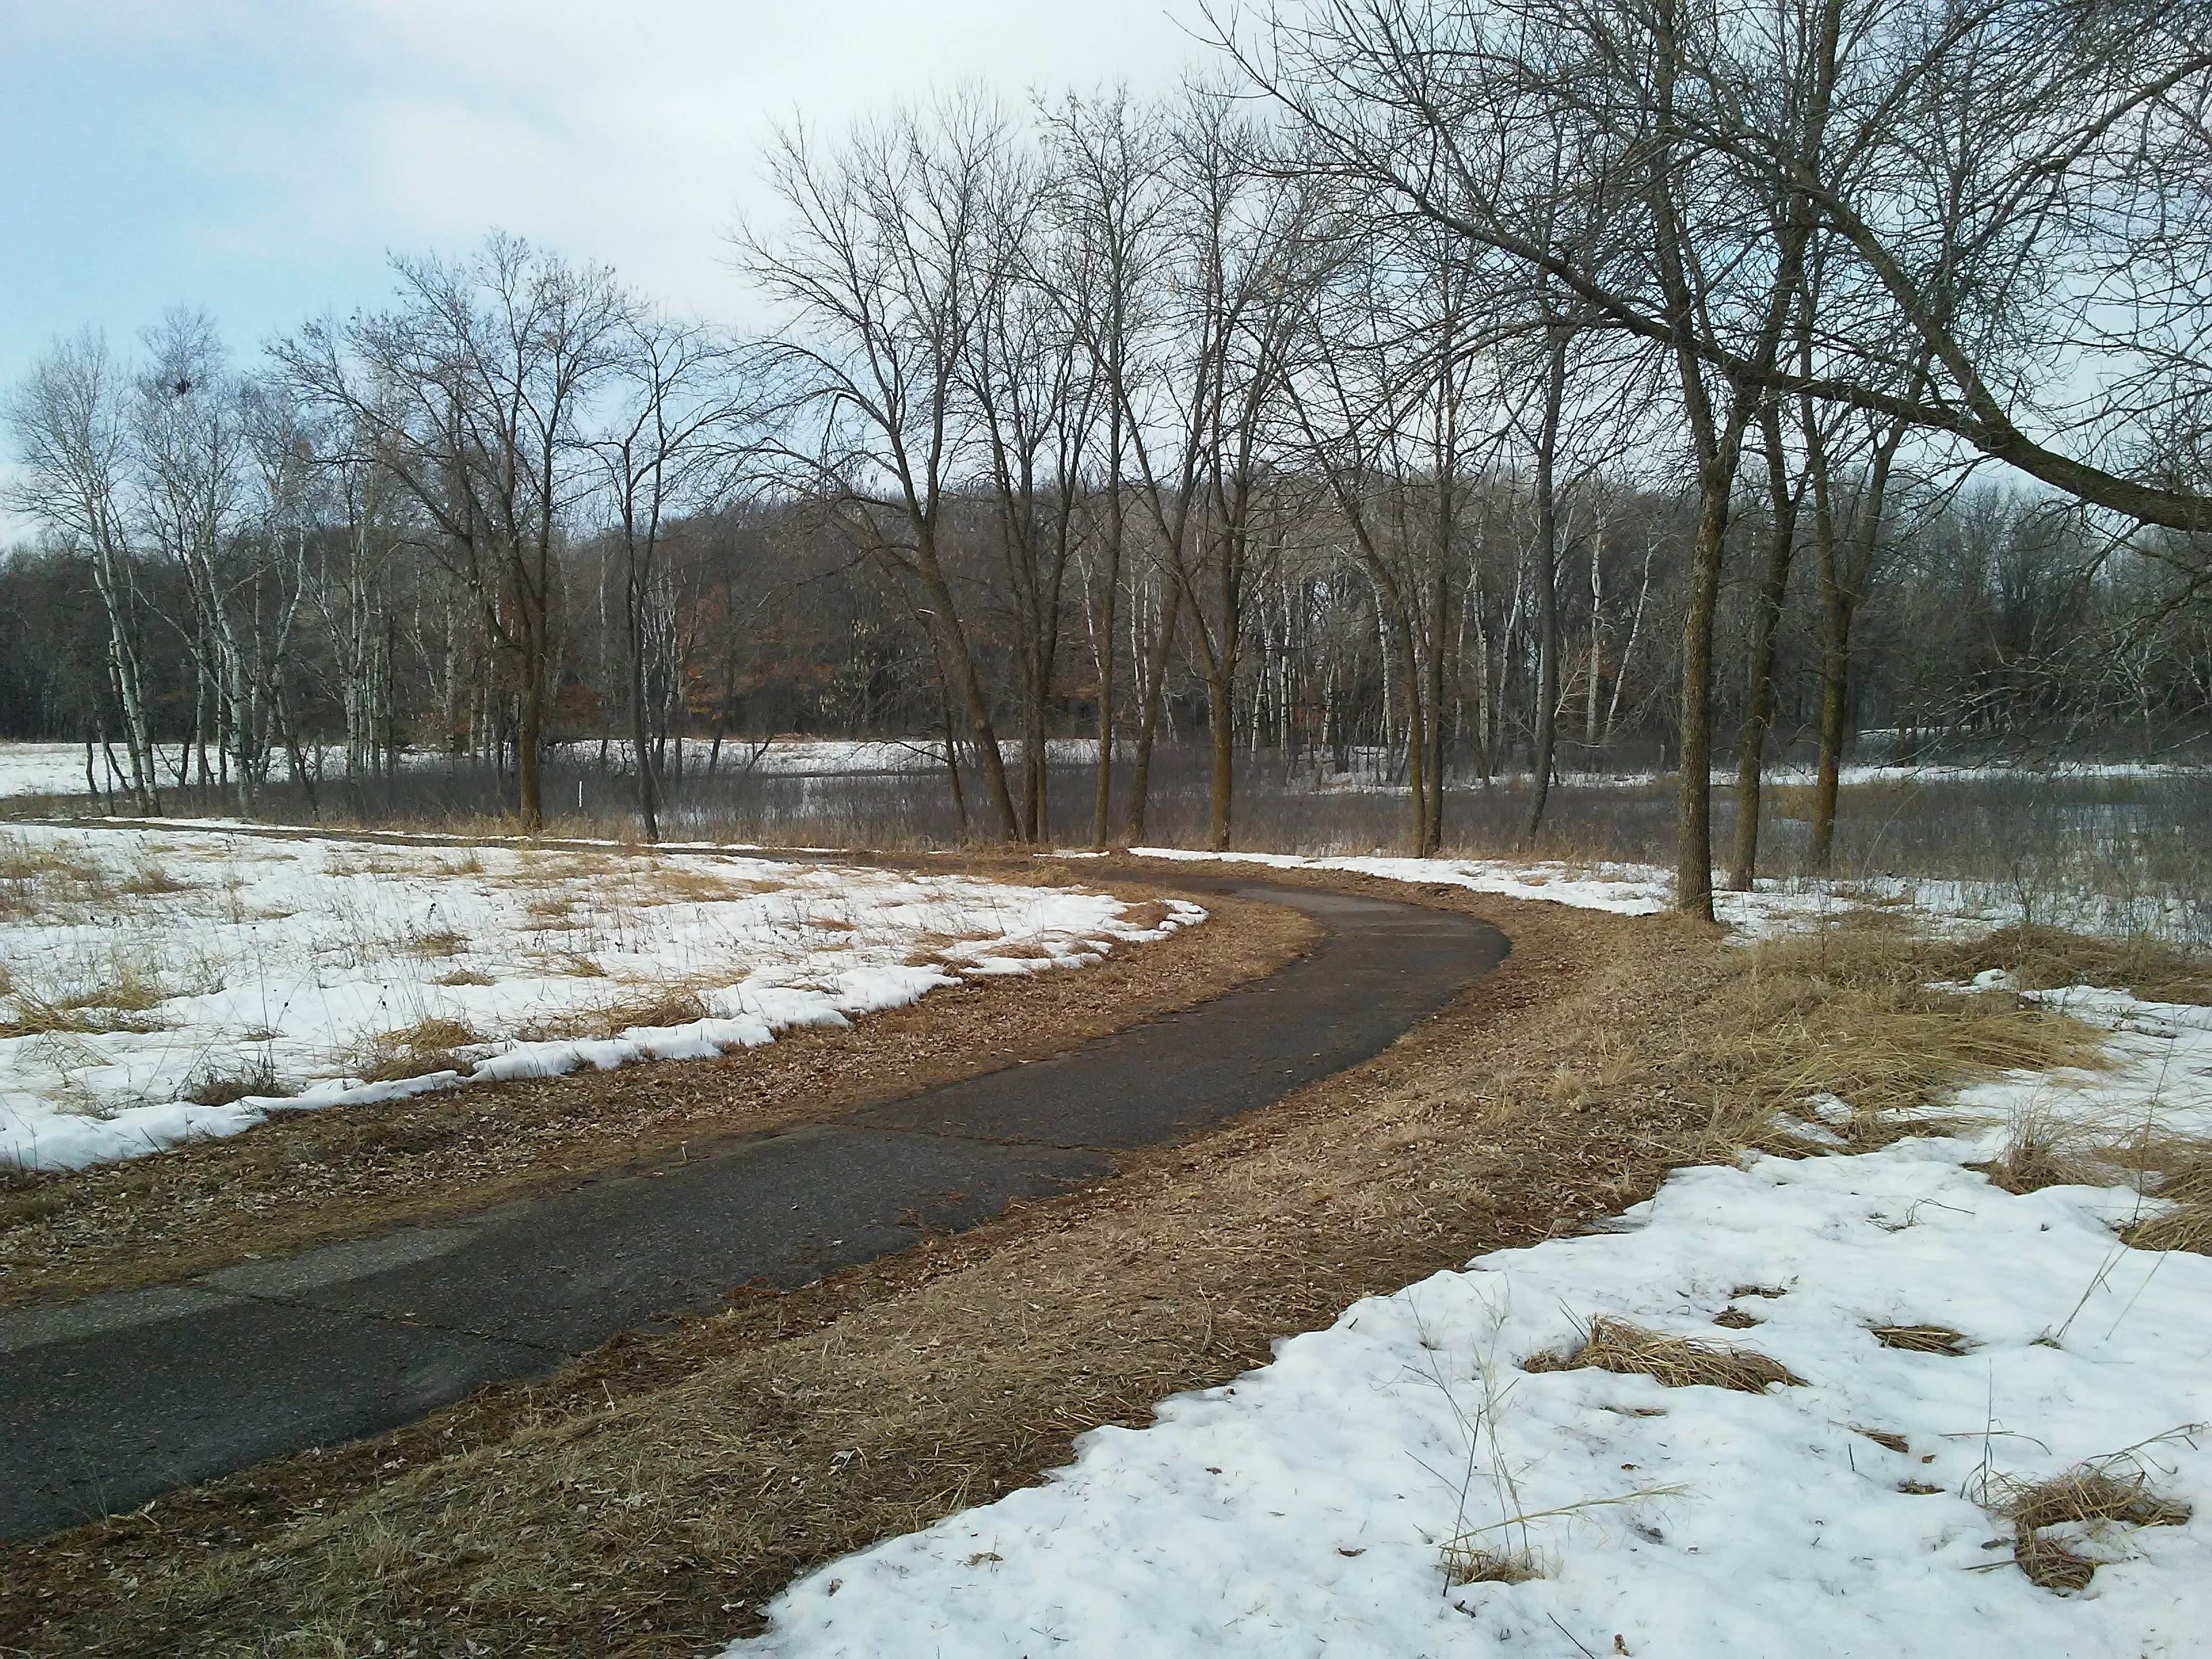 paved trail winding toward trees in background in winter